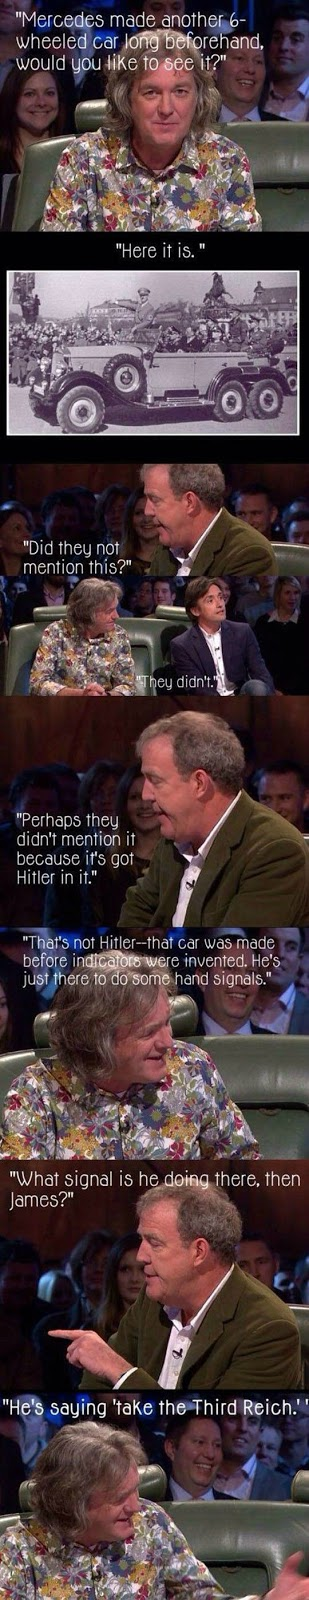 Top gear on Hitler